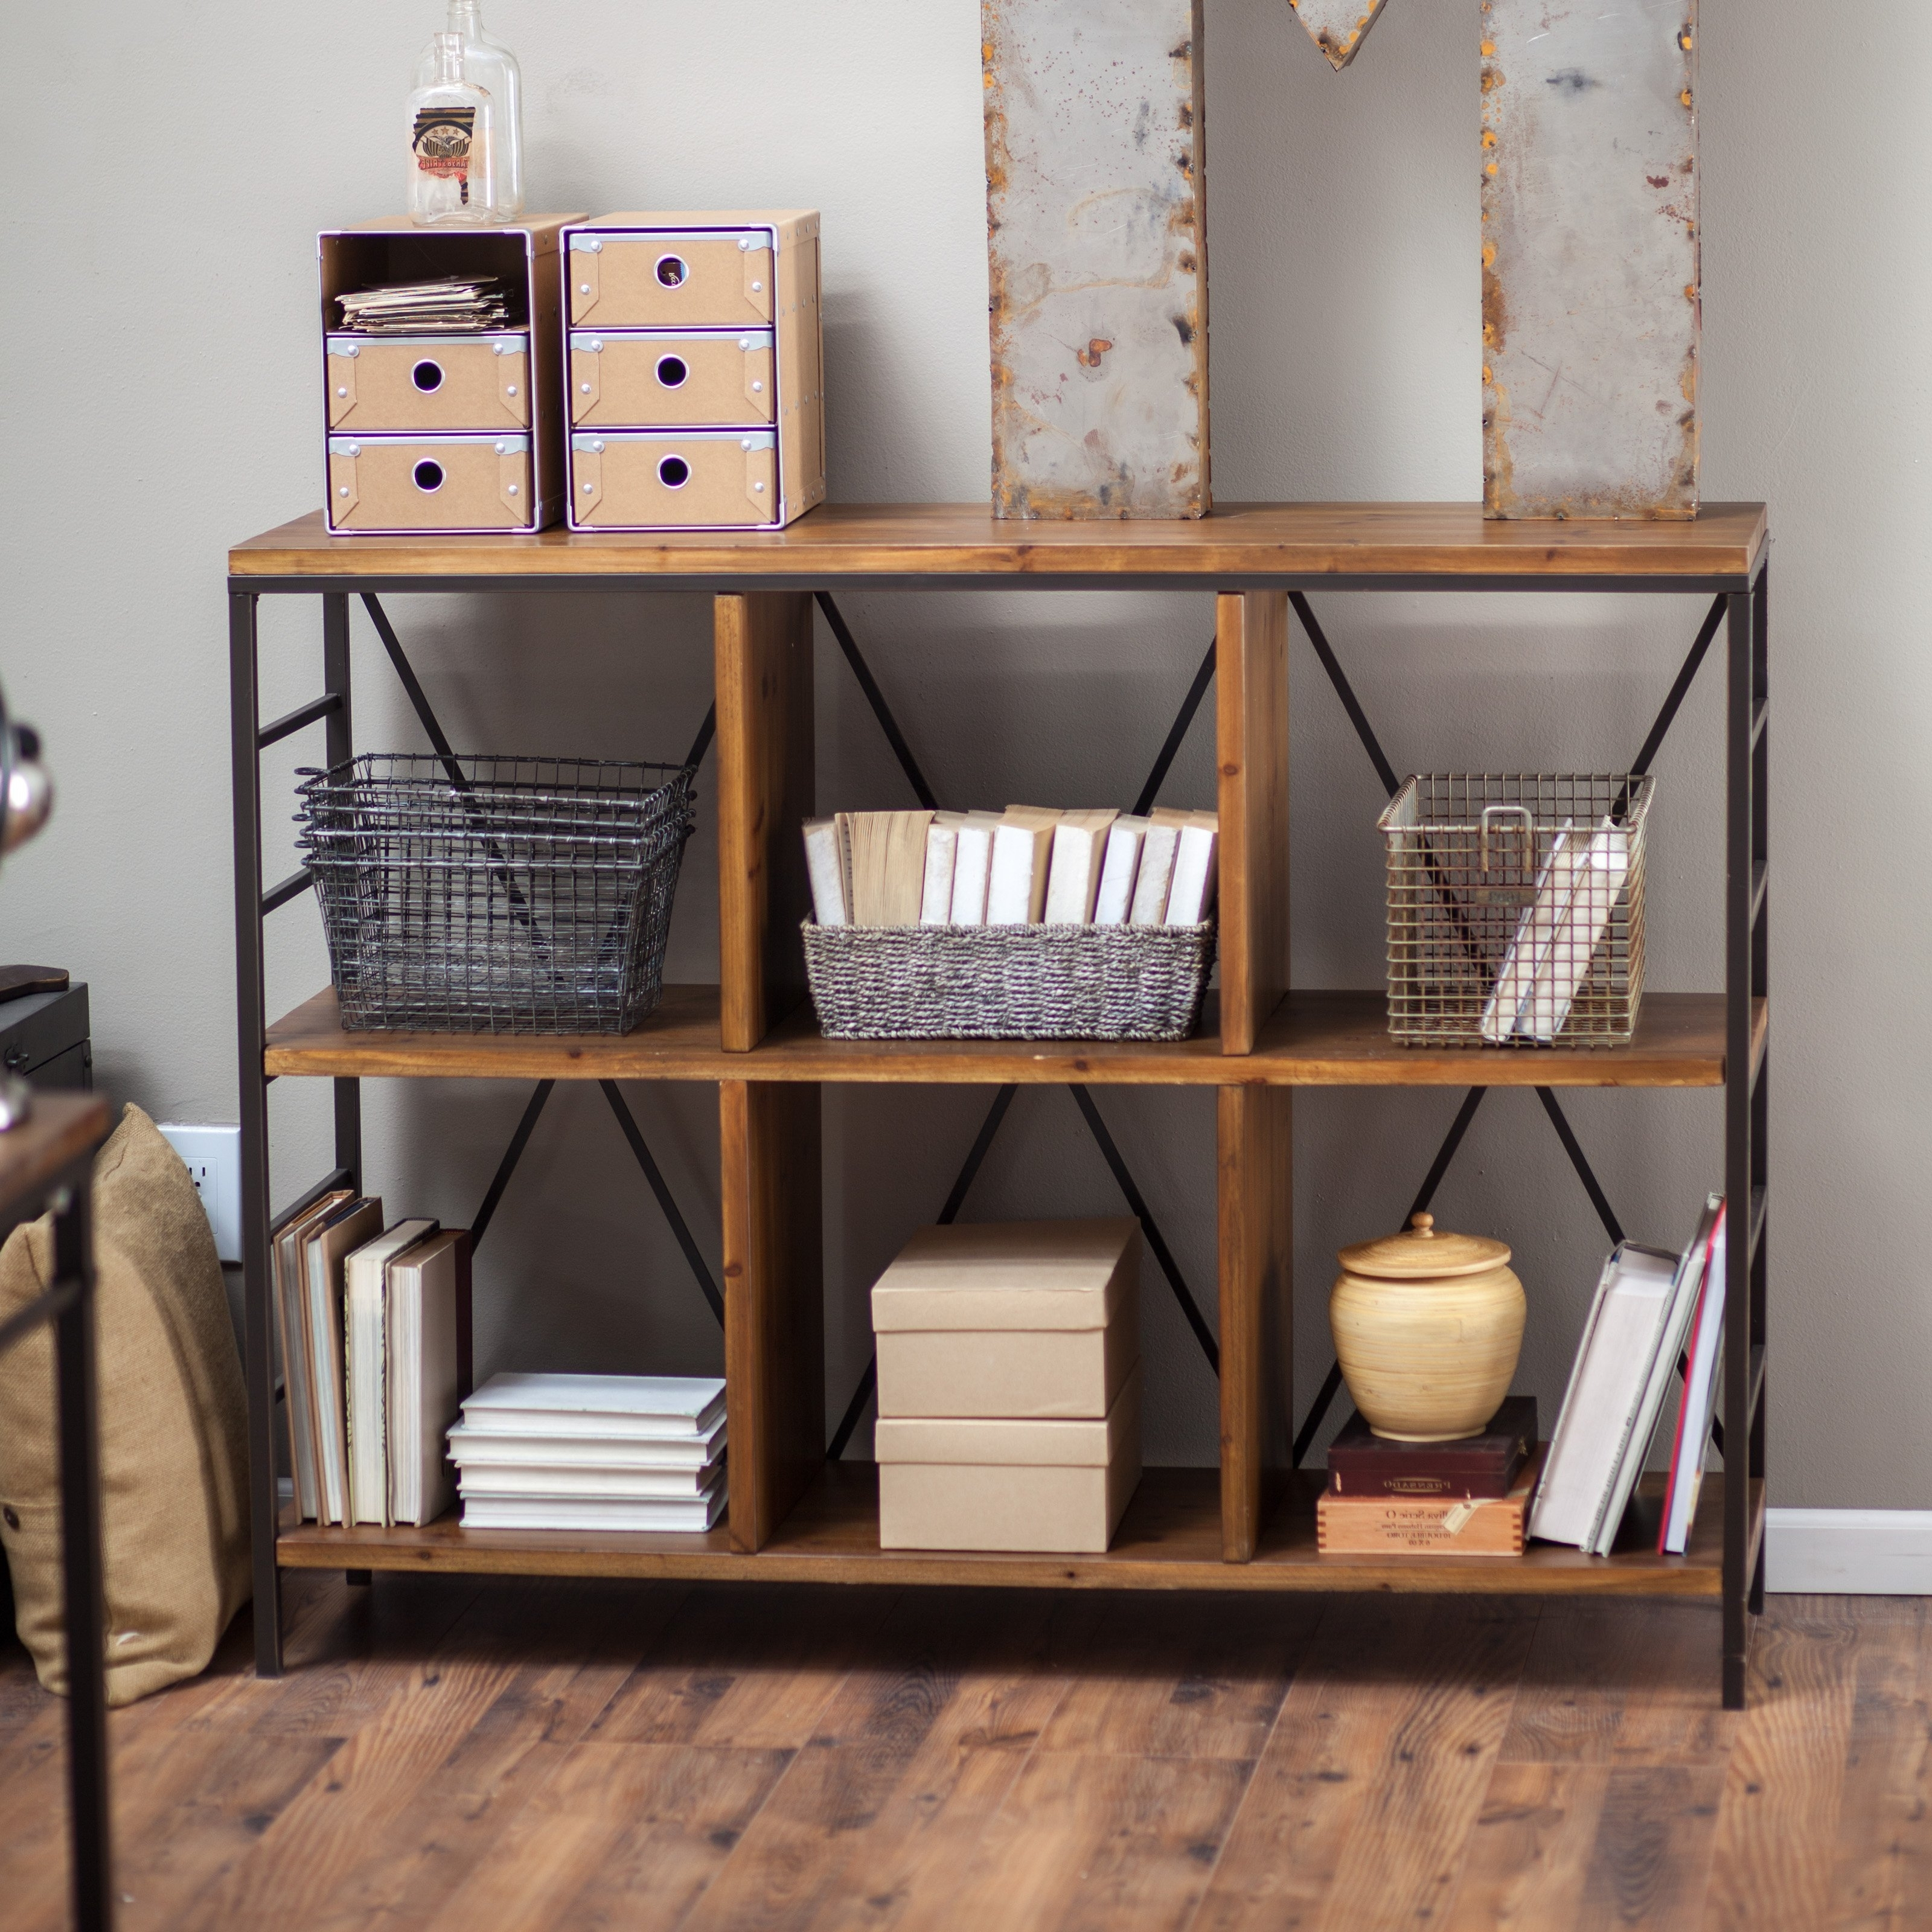 Inspirations: Cool Horizontal Bookcase For Storing Books And Within Latest Under Window Bookcases (Gallery 13 of 15)